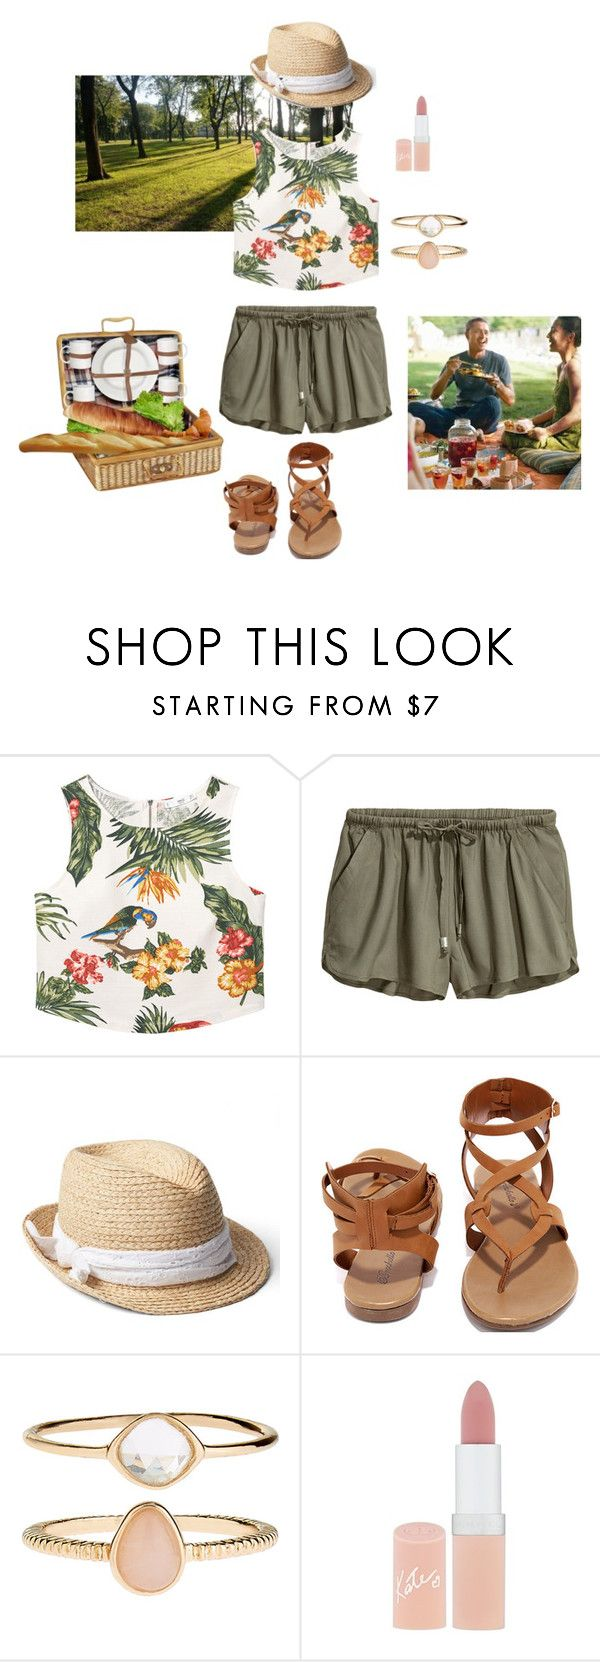 """""""Picnic outfit"""" by ulusia-1 ❤ liked on Polyvore featuring MANGO, Gap, Breckelle's, Accessorize and Rimmel"""